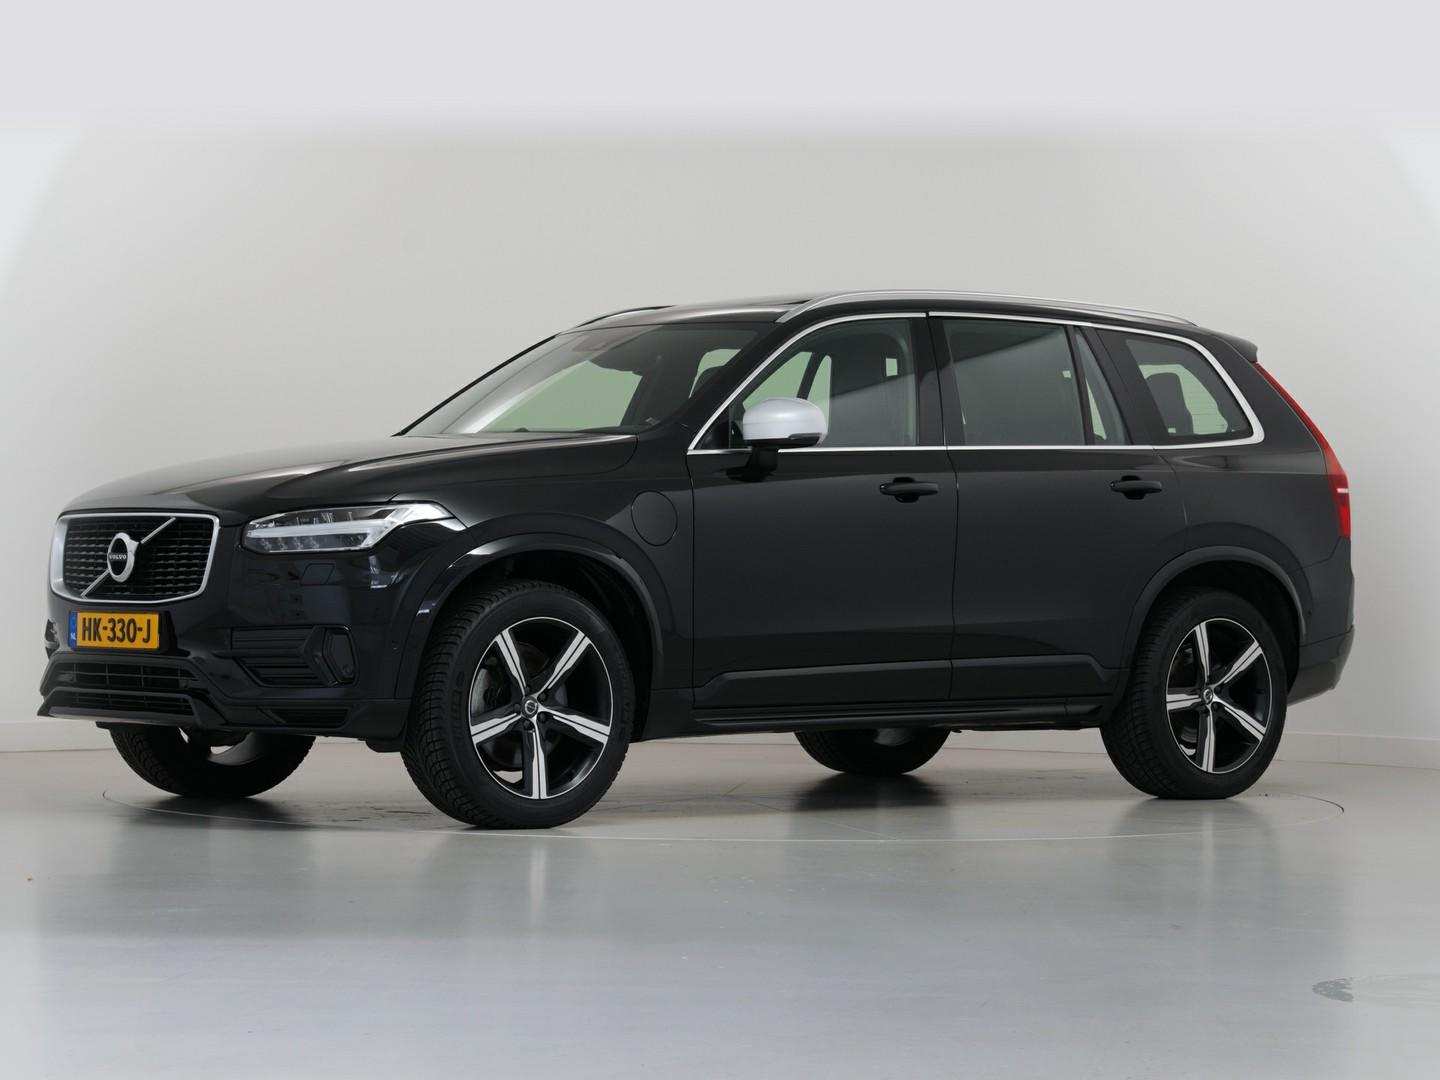 Volvo Xc90 2.0 t8 powershift twin engine awd r-design 7% bijtelling 7-pers. - excl. btw